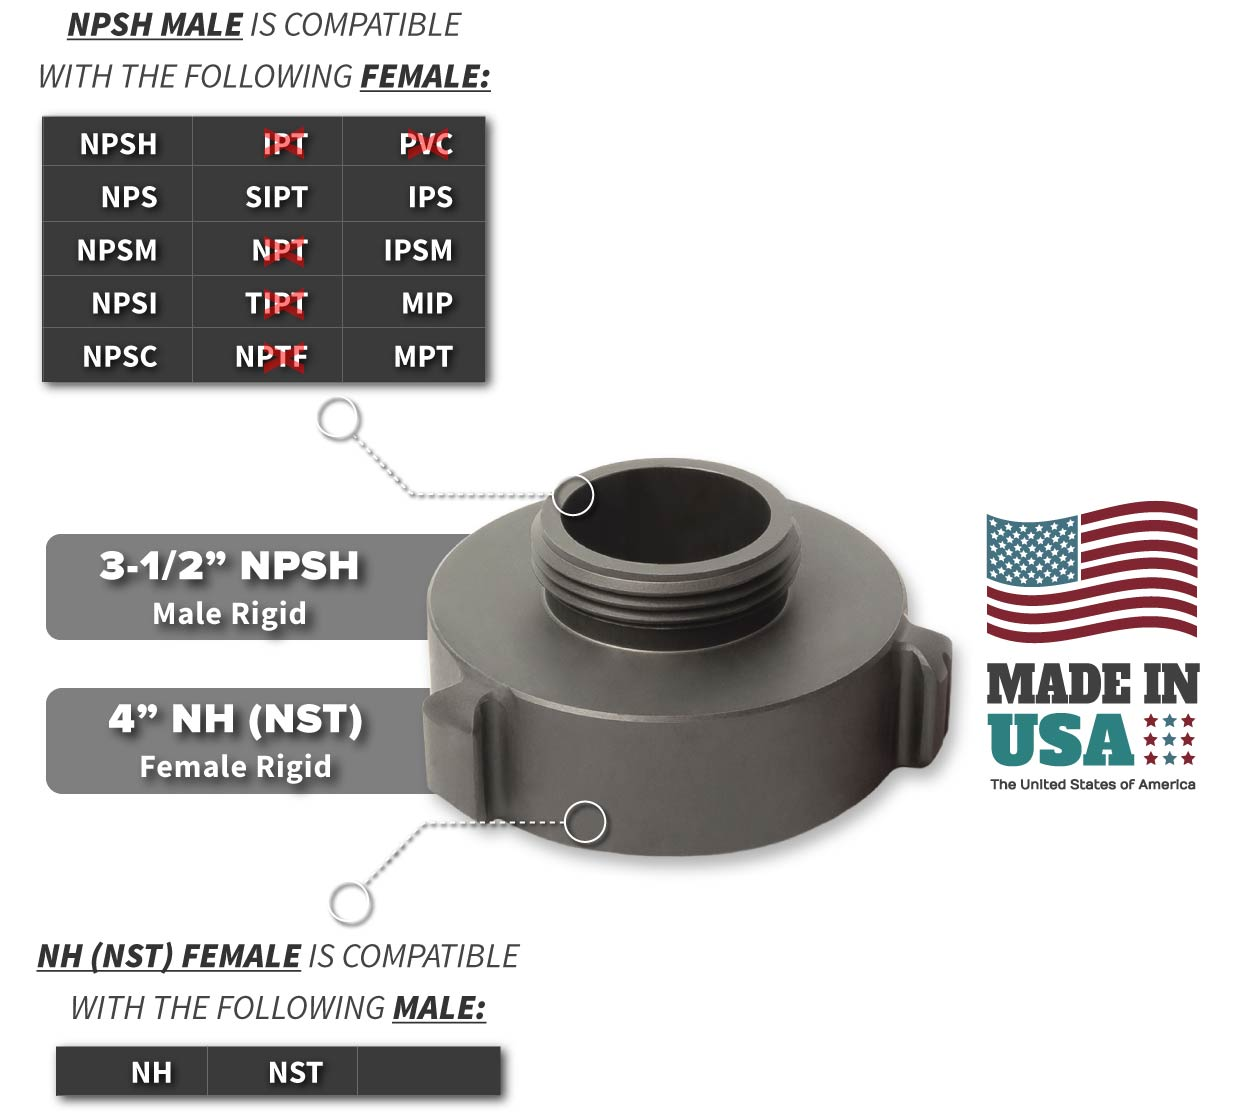 4 Inch NH-NST Female x 3.5 Inch NPSH Male Compatibility Thread Chart